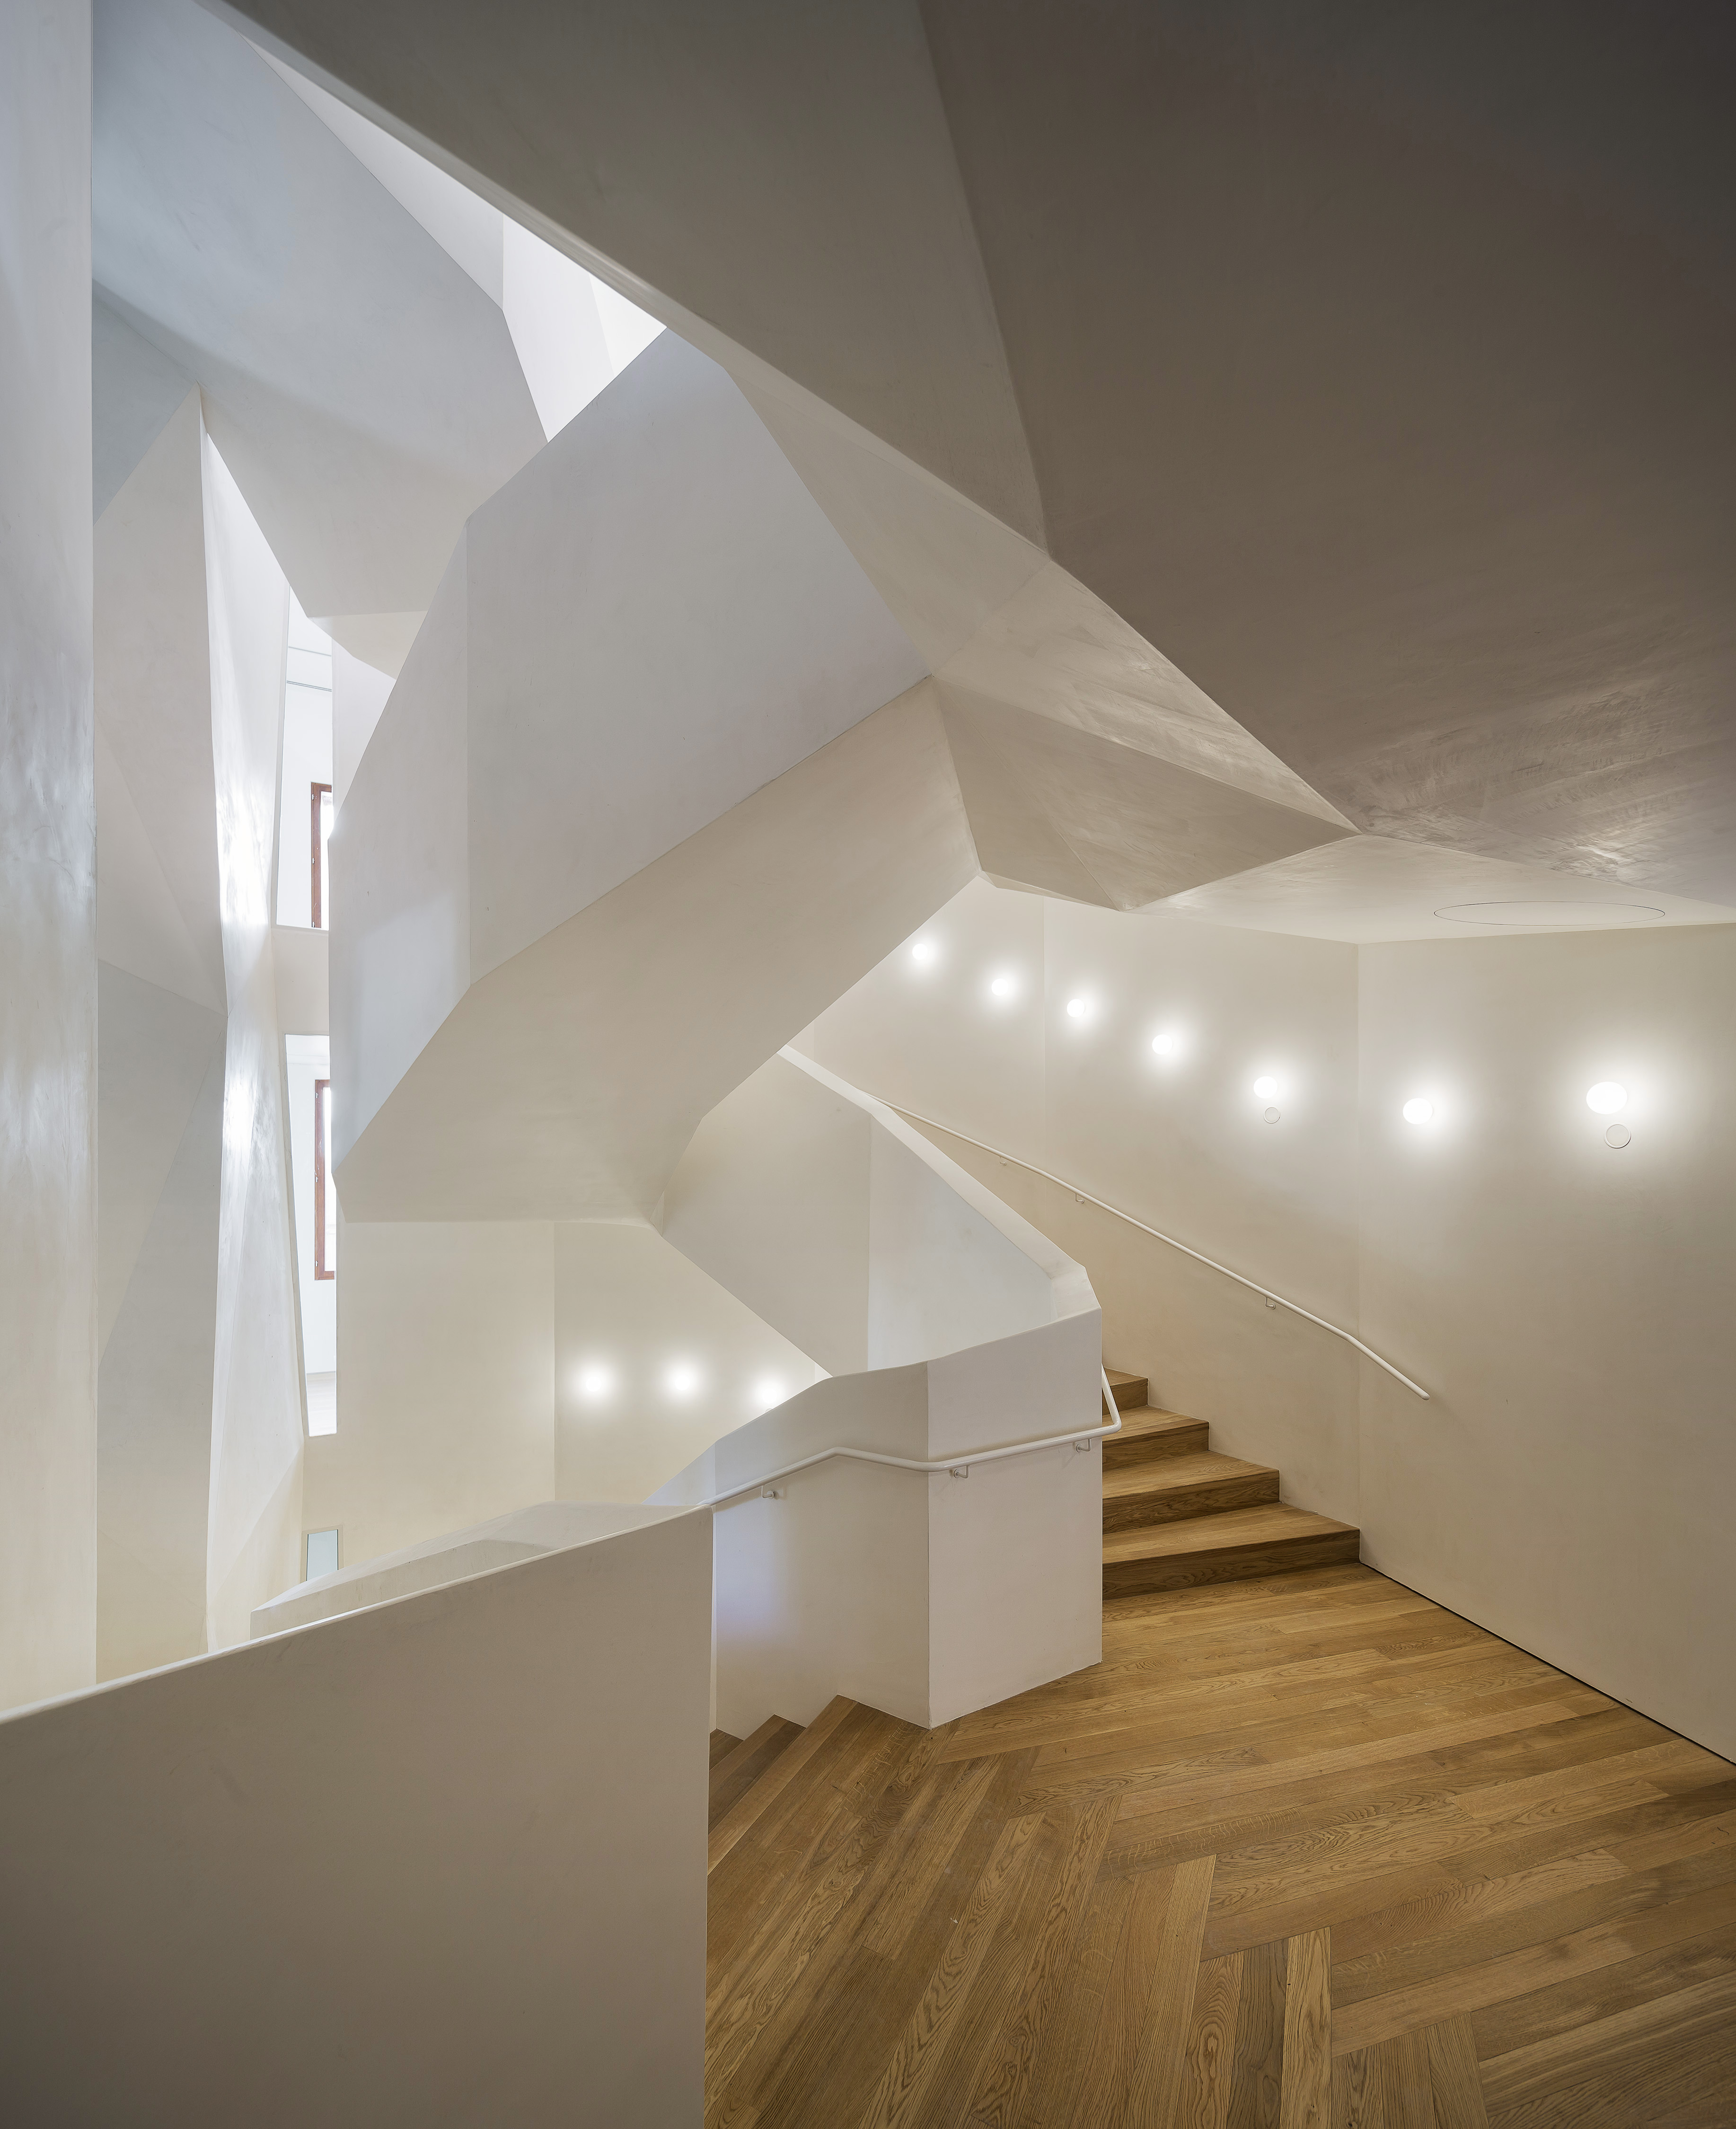 Antoni gaud s casa vicens to open later this month in - Casa torres barcelona ...